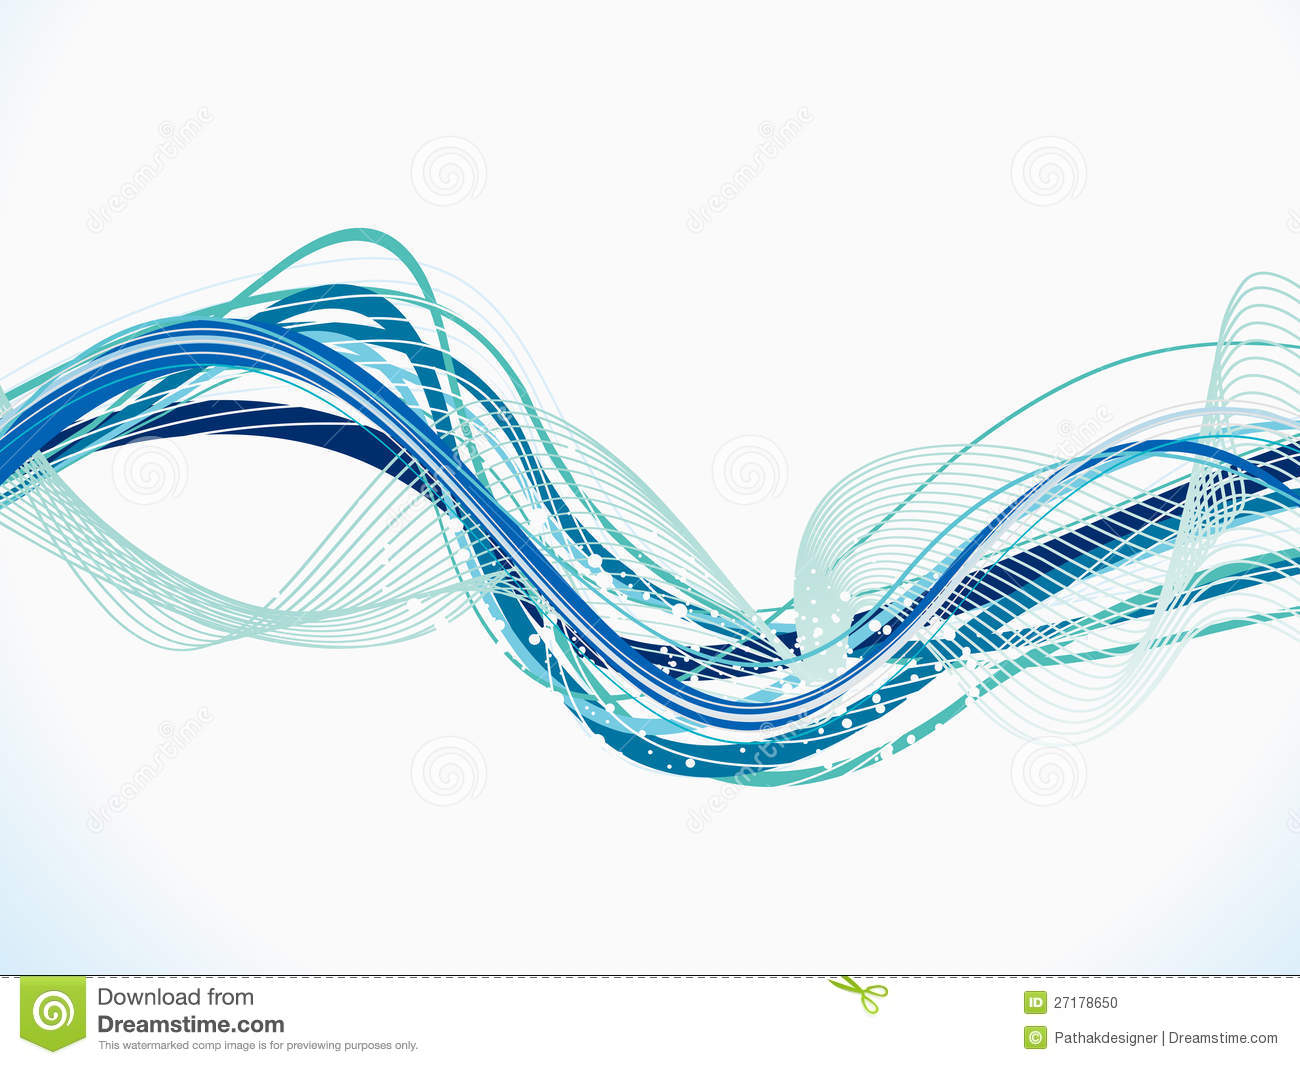 blue line wave background - photo #40